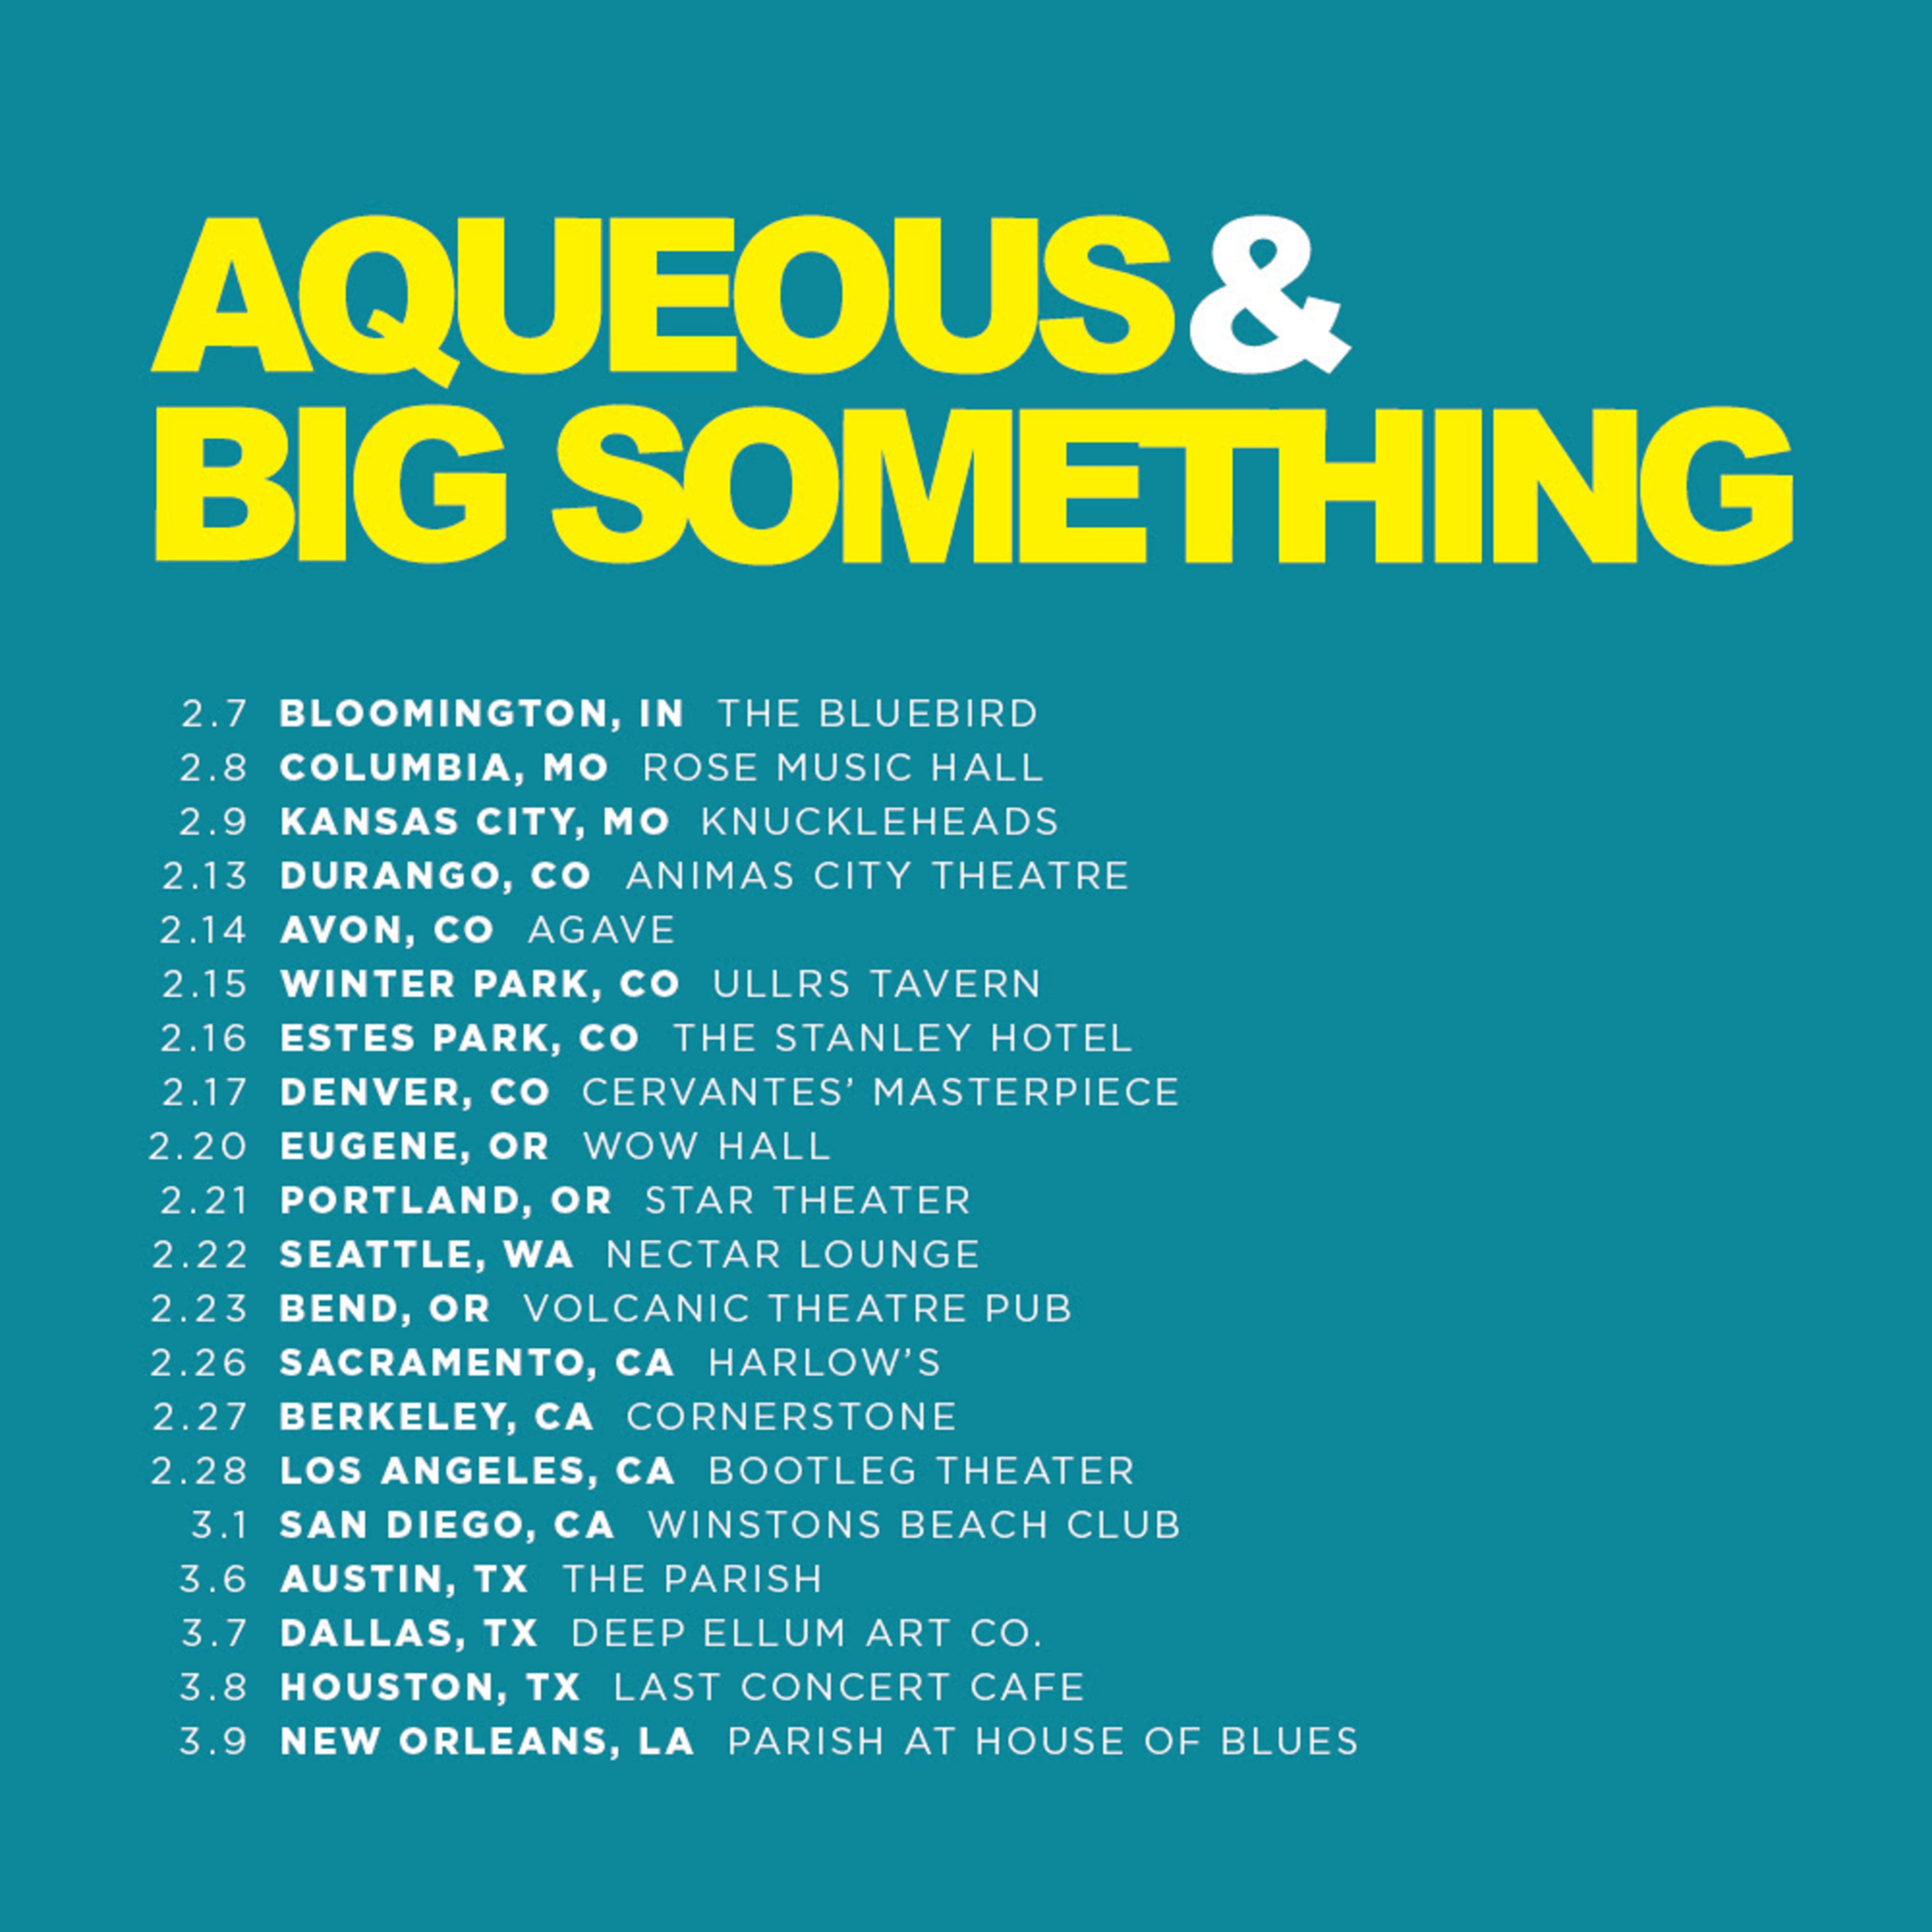 Aqueous Announces First-Ever West Coast Tour